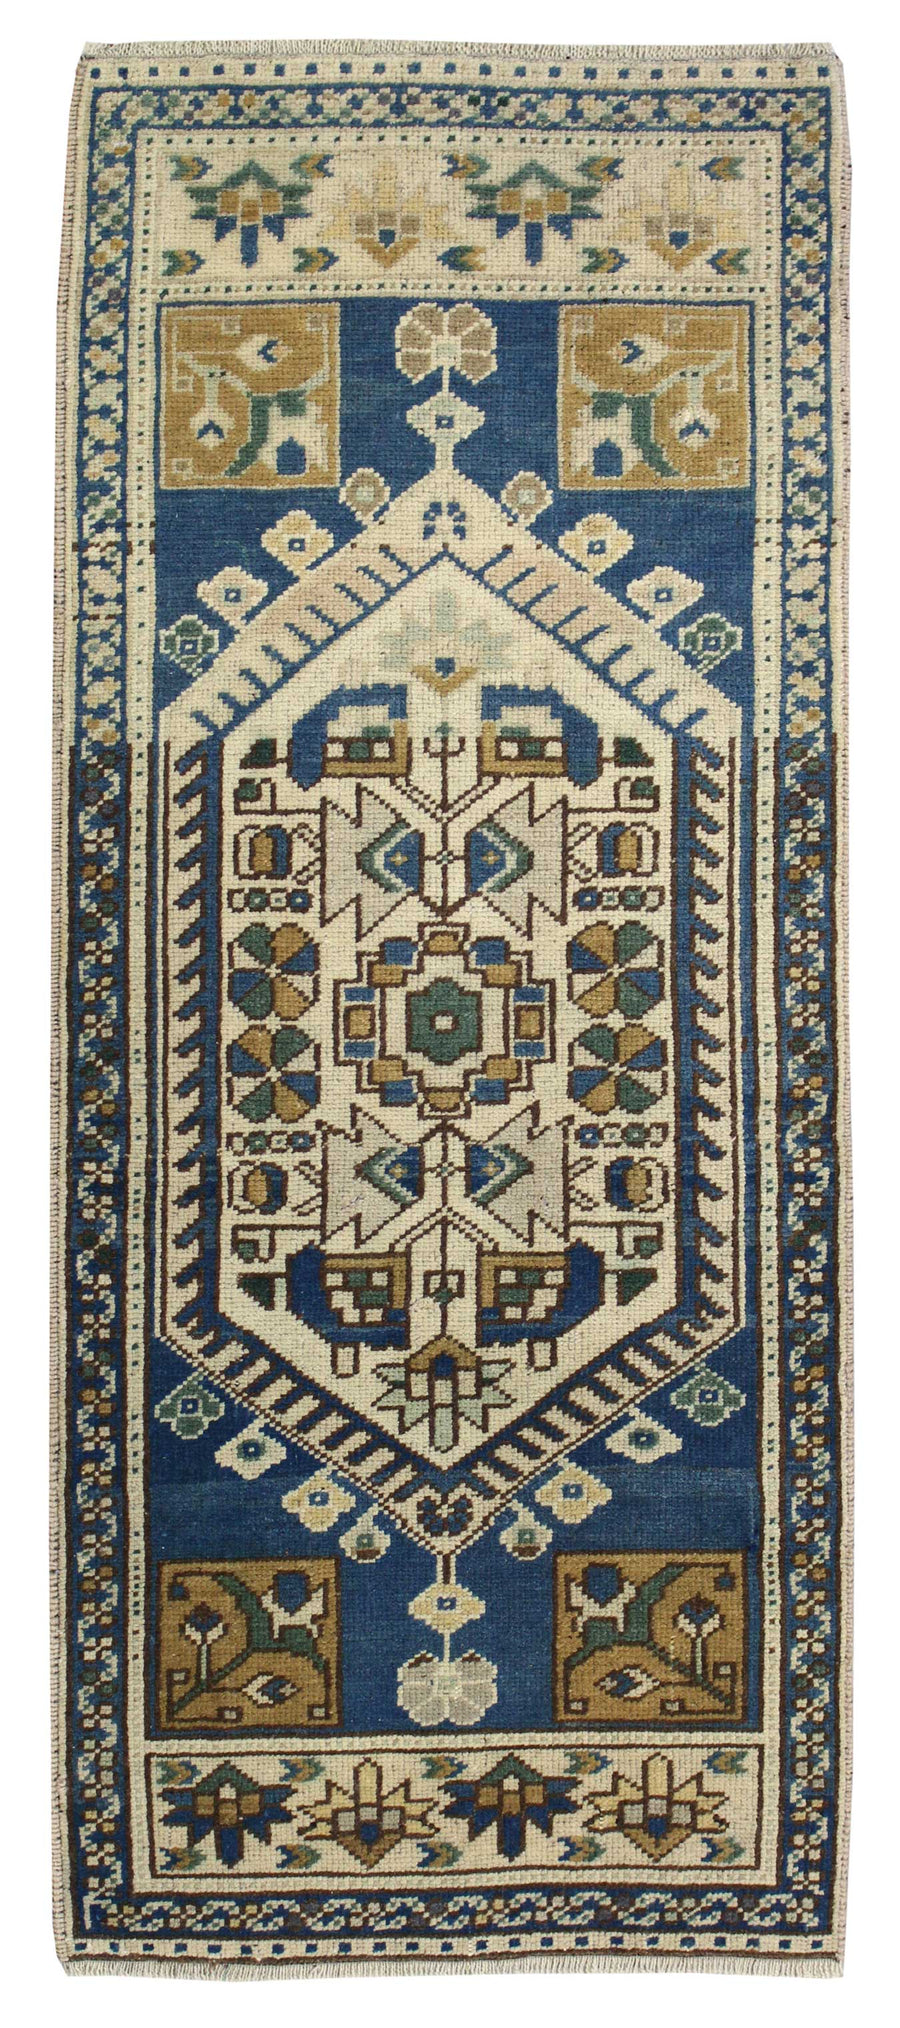 TASPINAR HANDKNOTTED RUG, J54104